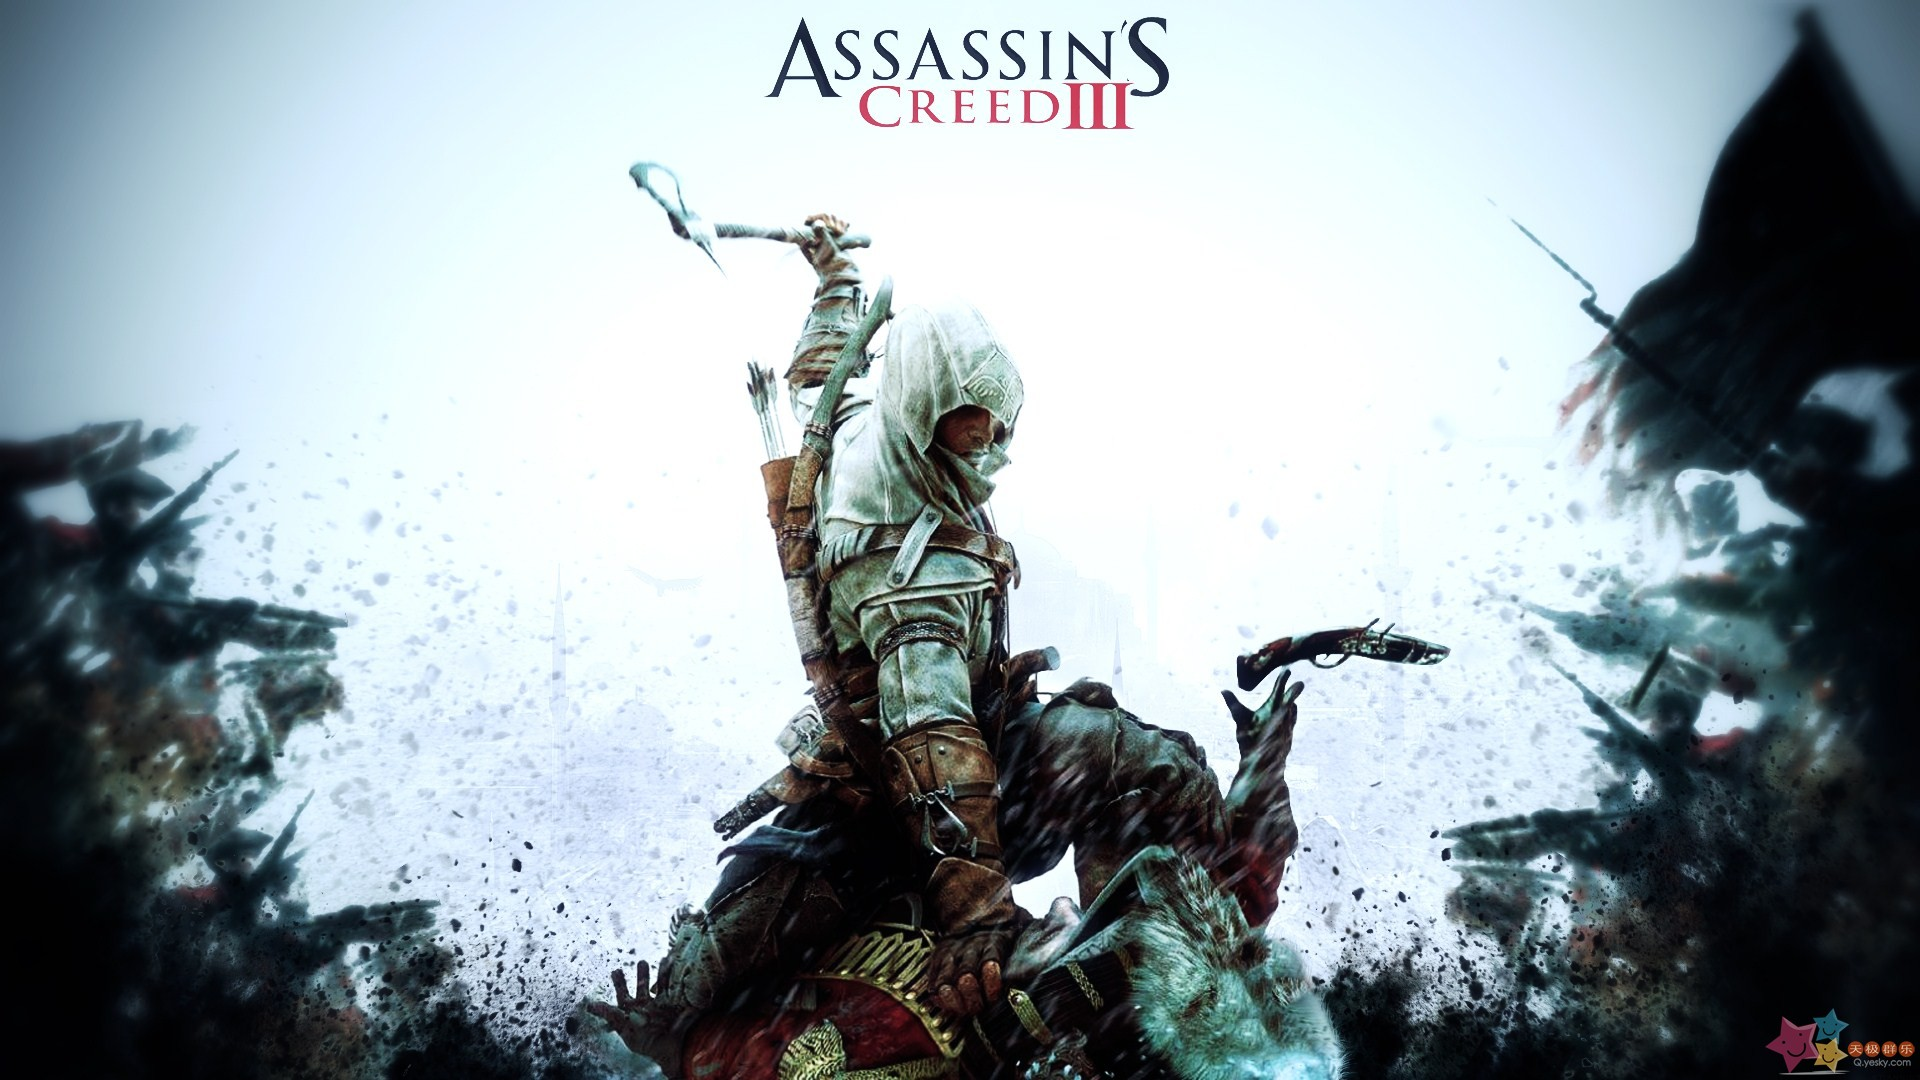 Video Game - Assassin's Creed III  Assassin's Creed Connor (Assassin's Creed) Wallpaper